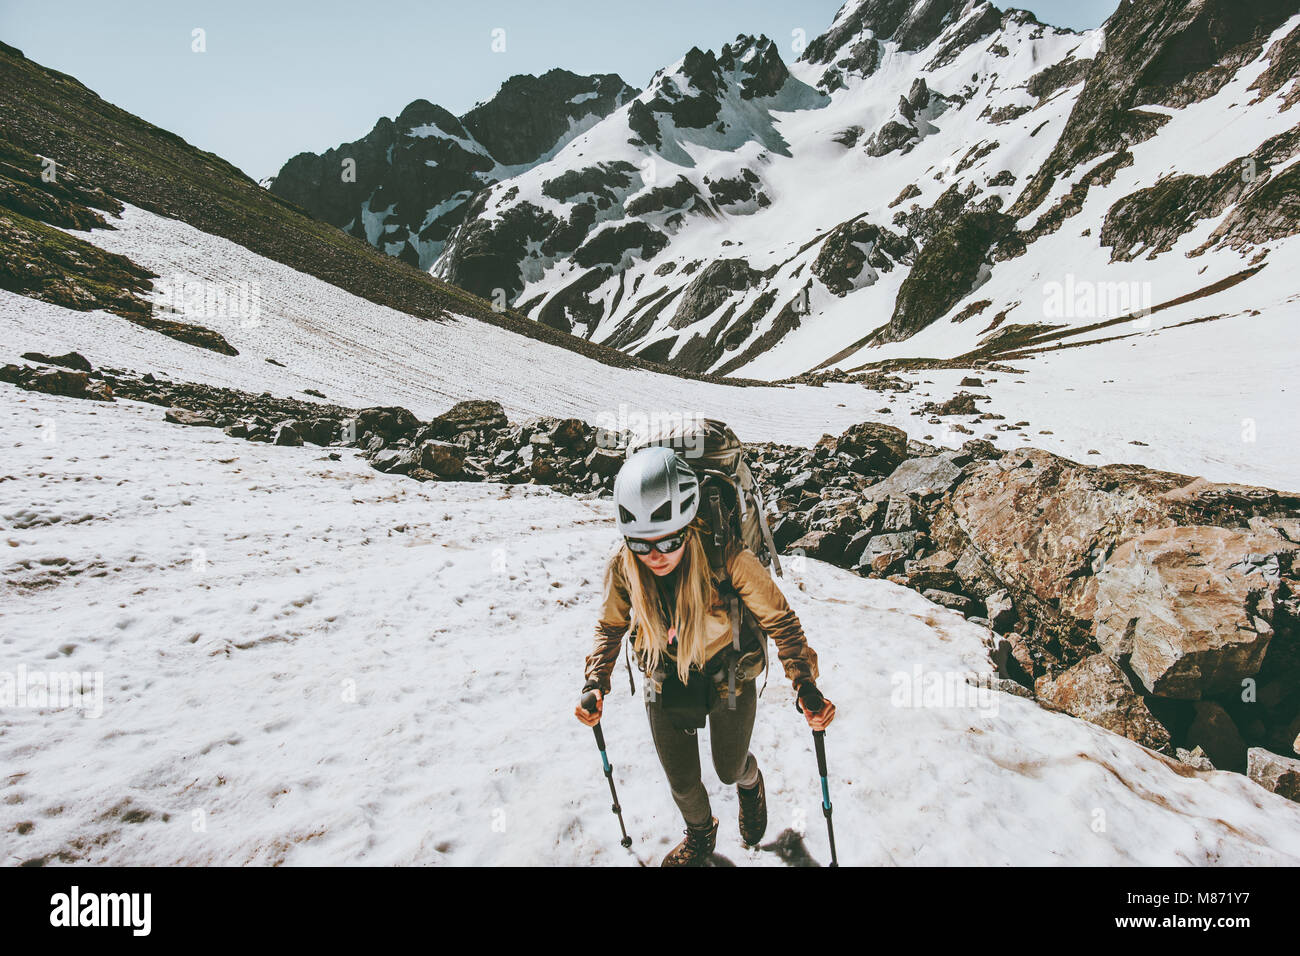 Active woman climbing in snowy mountains Travel lifestyle adventure concept extreme vacations outdoor gear - Stock Image